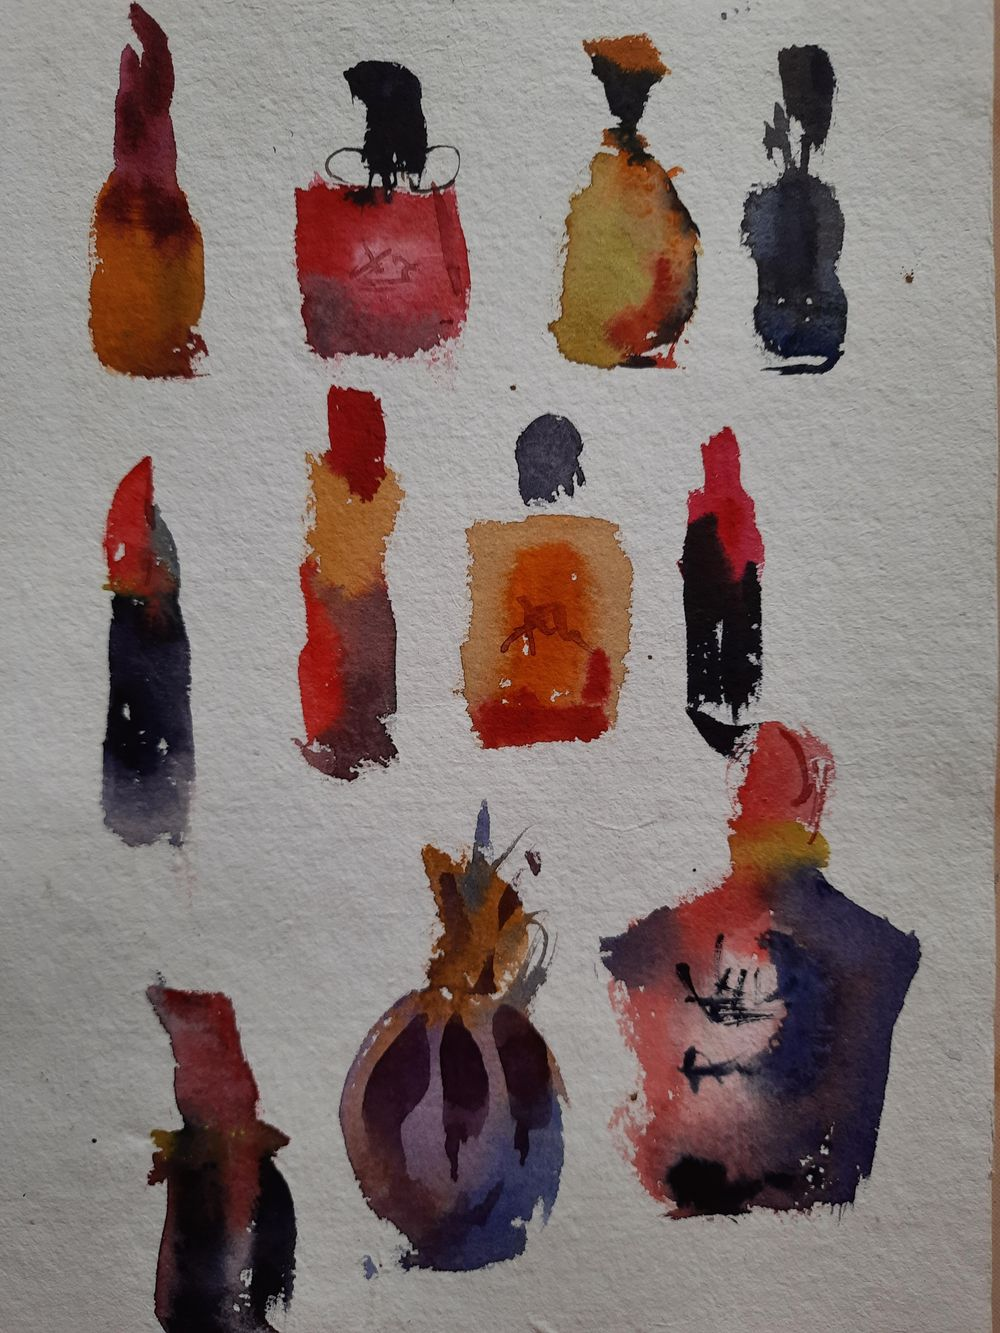 Watercolor workout - image 3 - student project